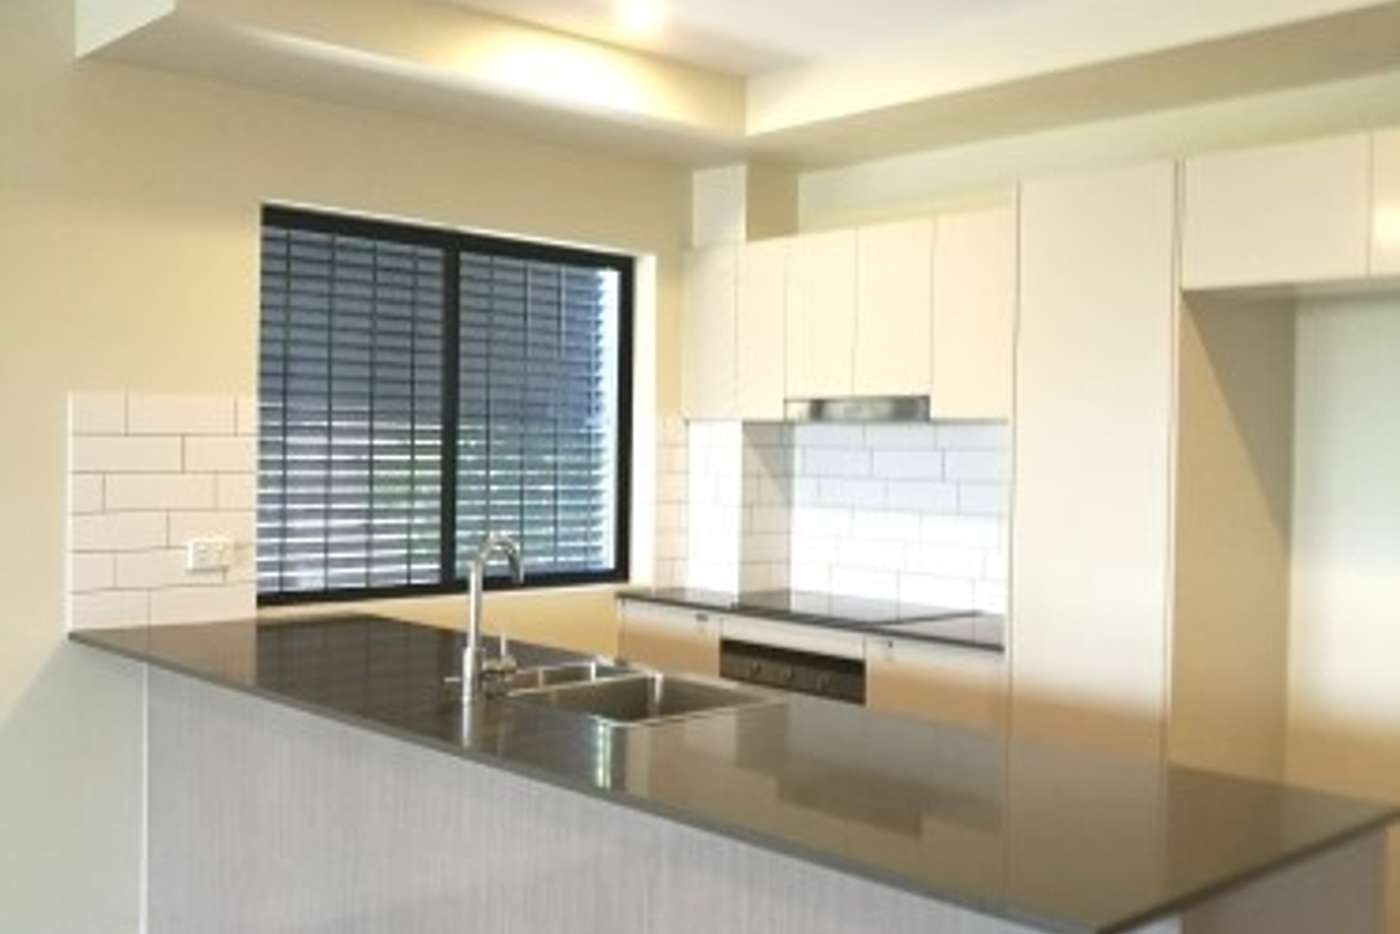 Fifth view of Homely apartment listing, 12/14 Gallway Street, Windsor QLD 4030